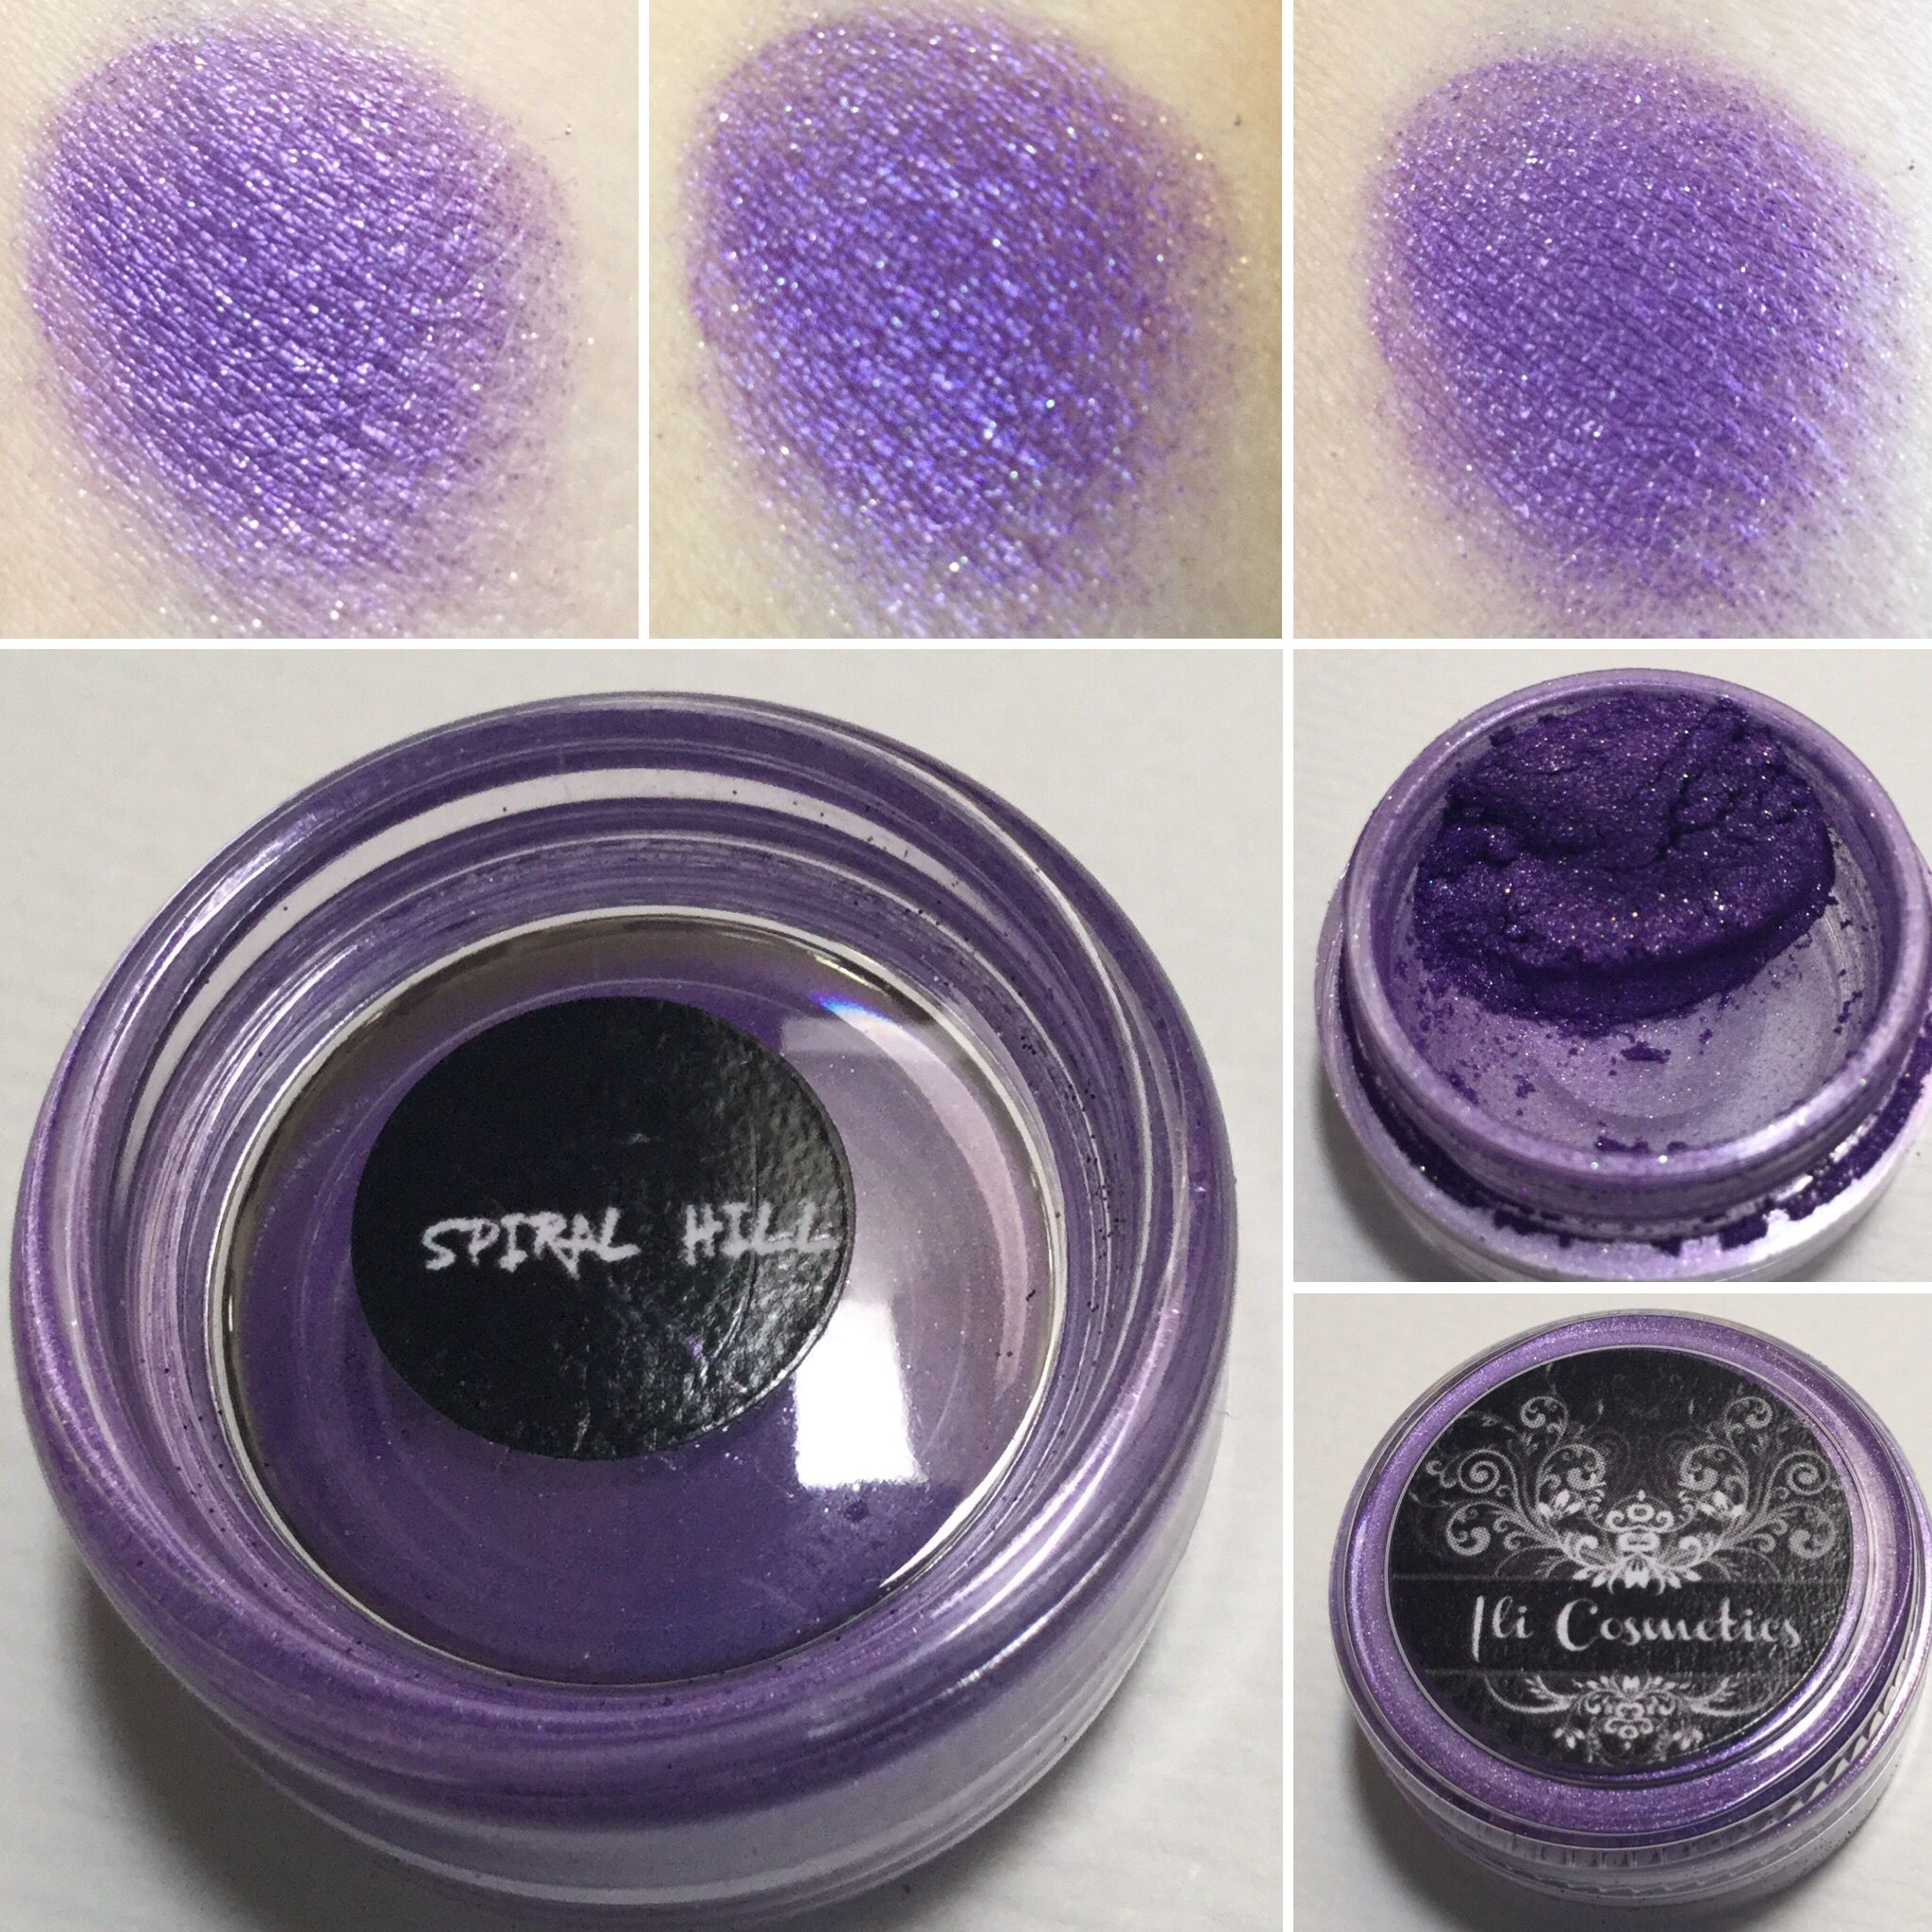 Ili Cosmetics Spiral Hill eyeshadow. Inspired by the